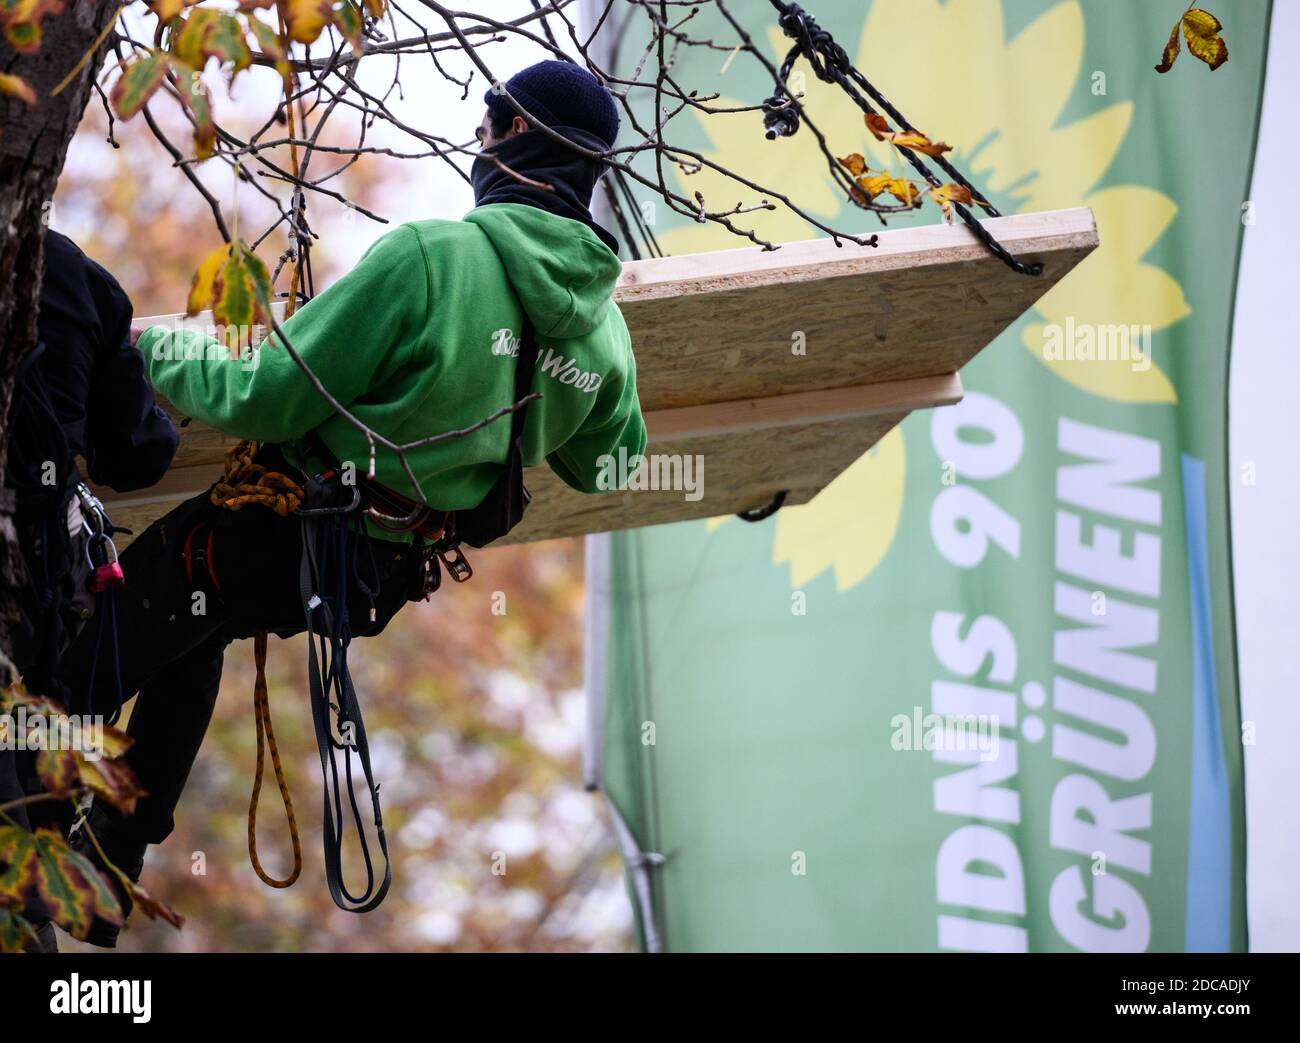 Wiesbaden, Germany. 20th Nov, 2020. An activist floats in front of the flag of Bündnis90/Die Grünen. Activists from Robin Wood, environmental and nature conservation organisation, have occupied two trees in front of the party headquarters of the Hessian Greens in the state capital. The organisation is protesting against the clearings in connection with the expansion of the A49 and wants to remind the Greens in Hesse of their political responsibility. Credit: Andreas Arnold/dpa/Alamy Live News Stock Photo